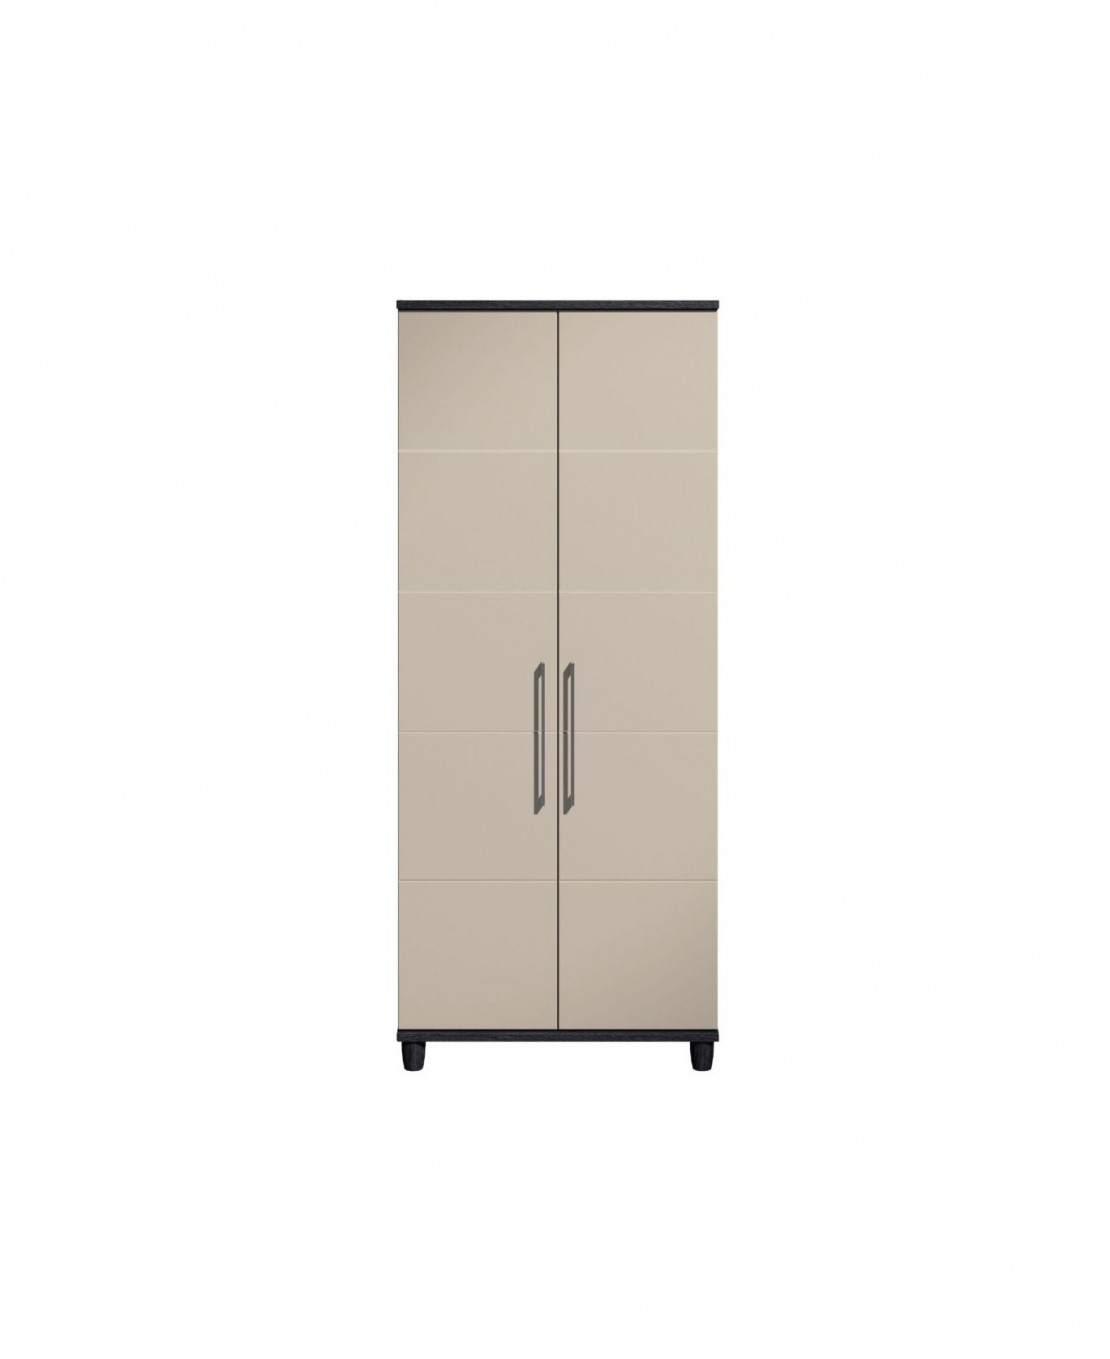 /_images/product-photos/kt-furniture-vardy-2-door-robe-grey-a.jpg